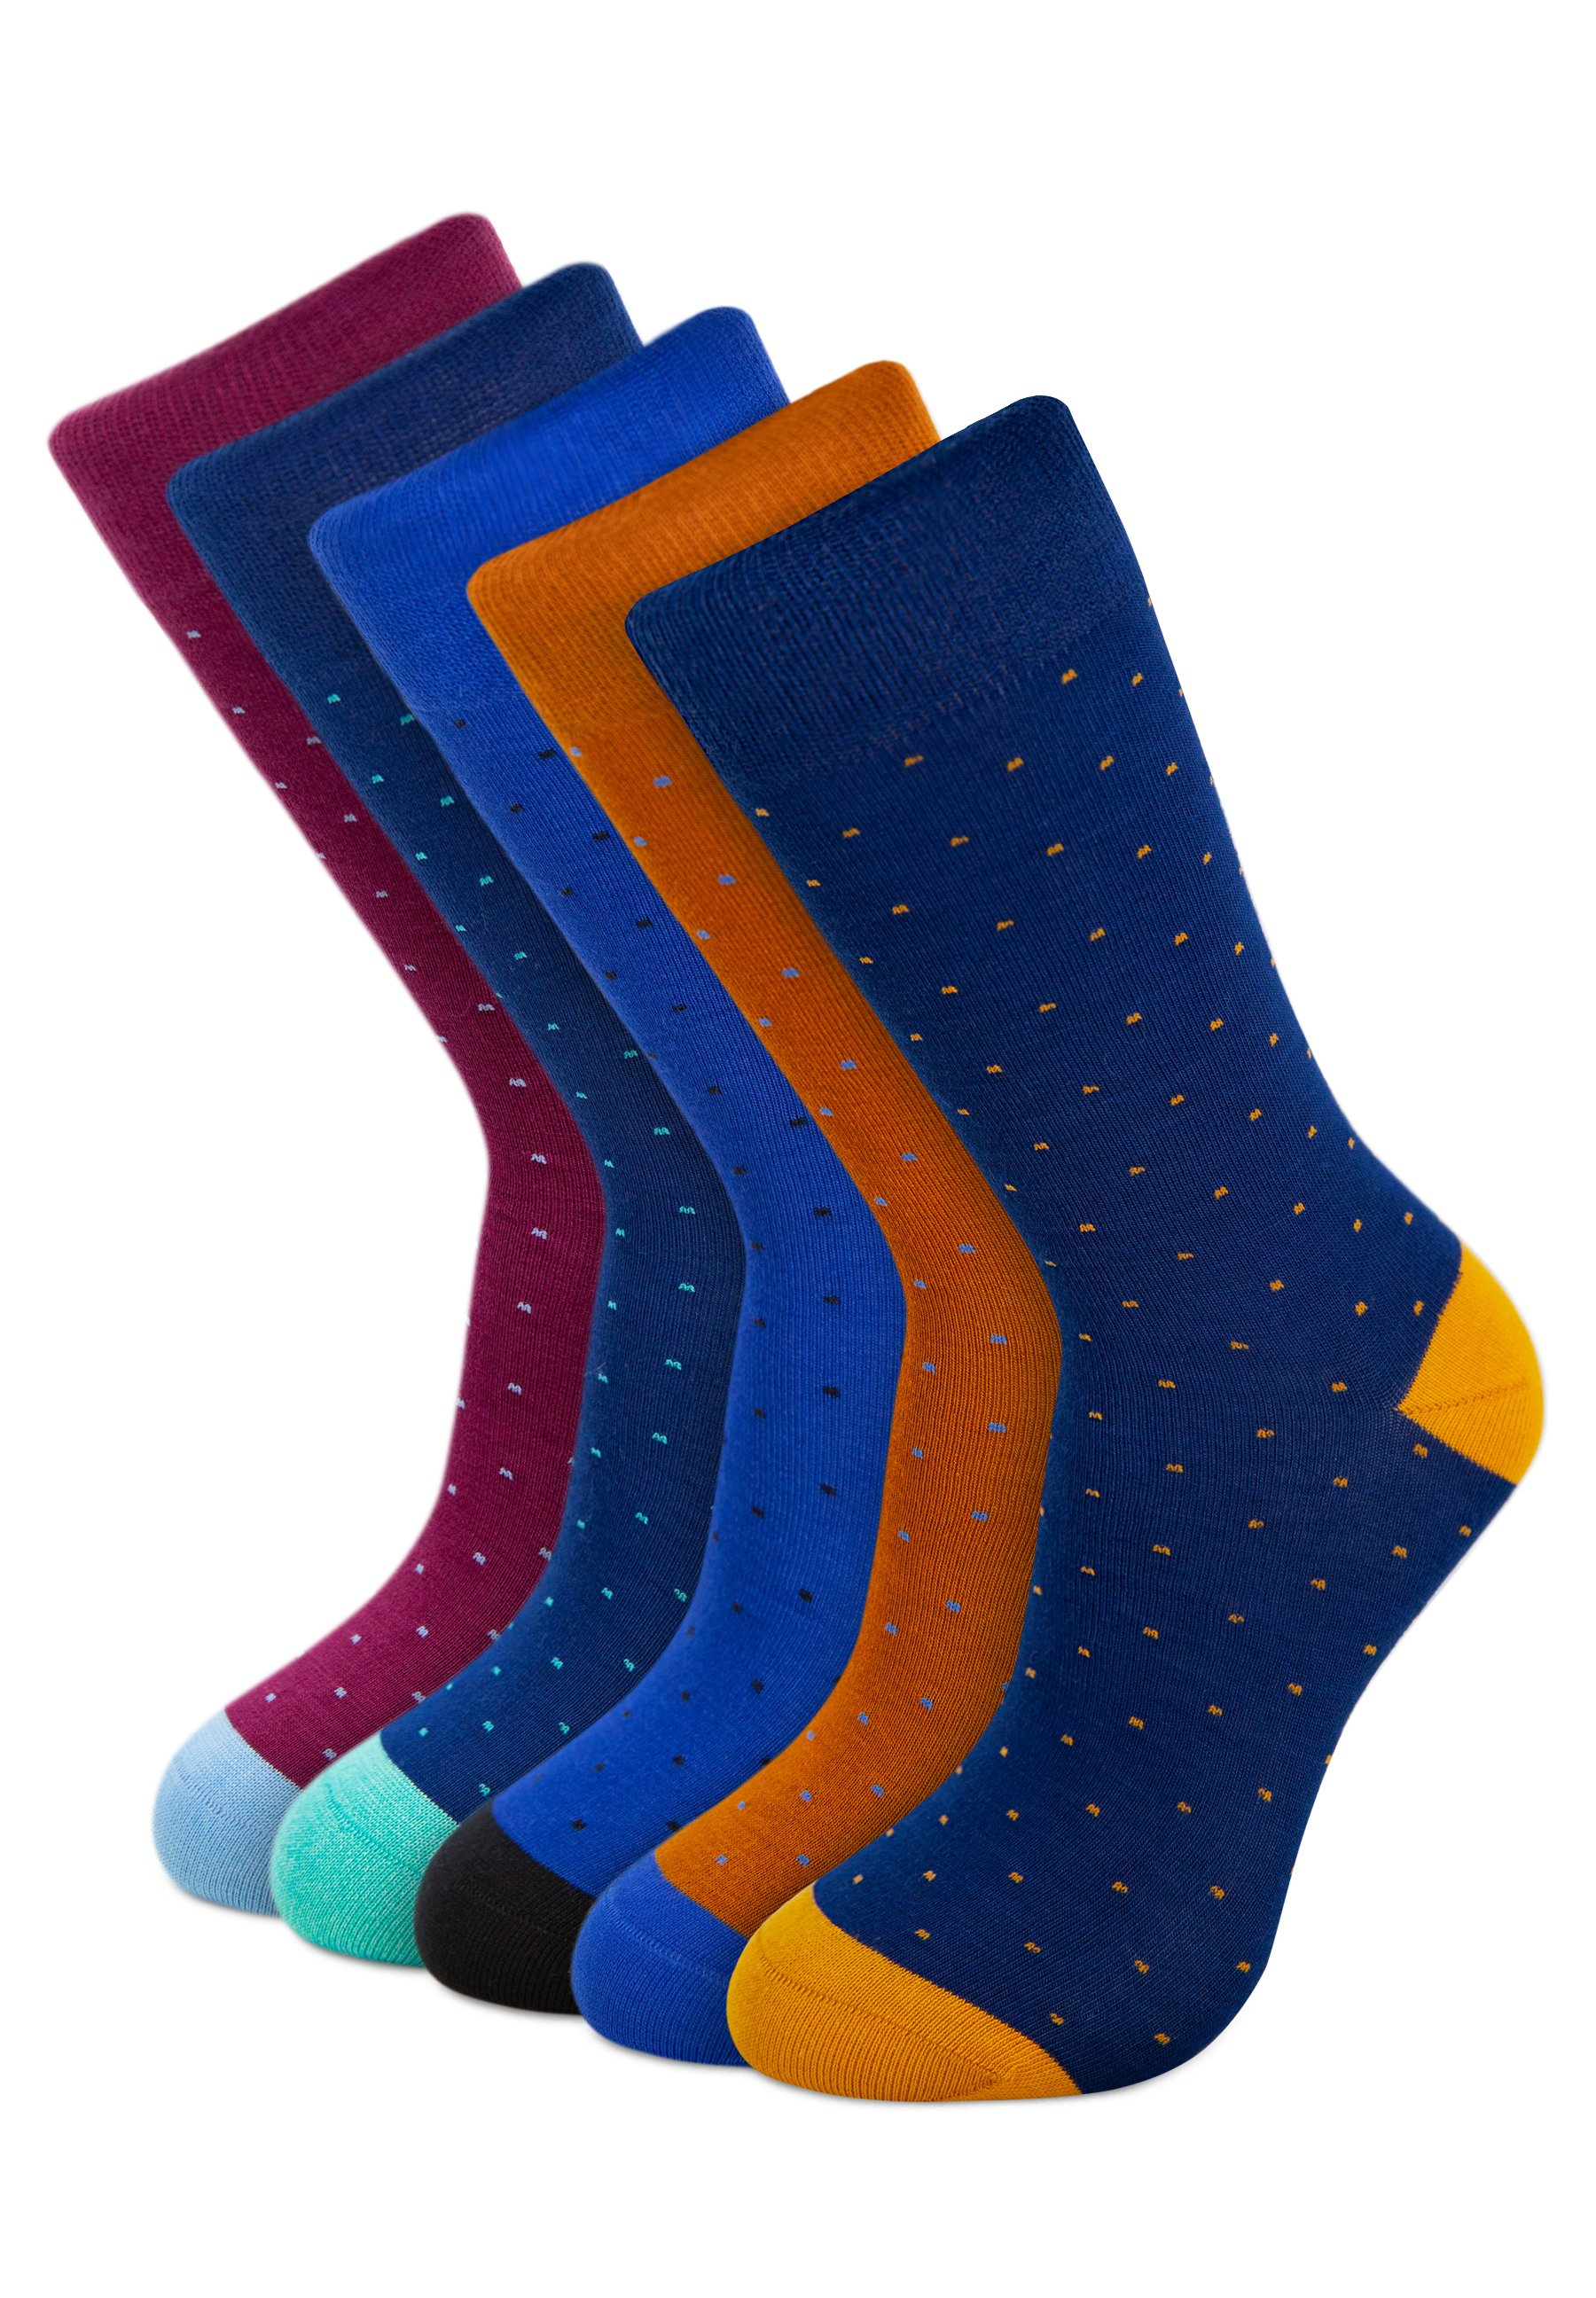 Donna DOTS EDITION BAMBOO 5 PACK - Calze